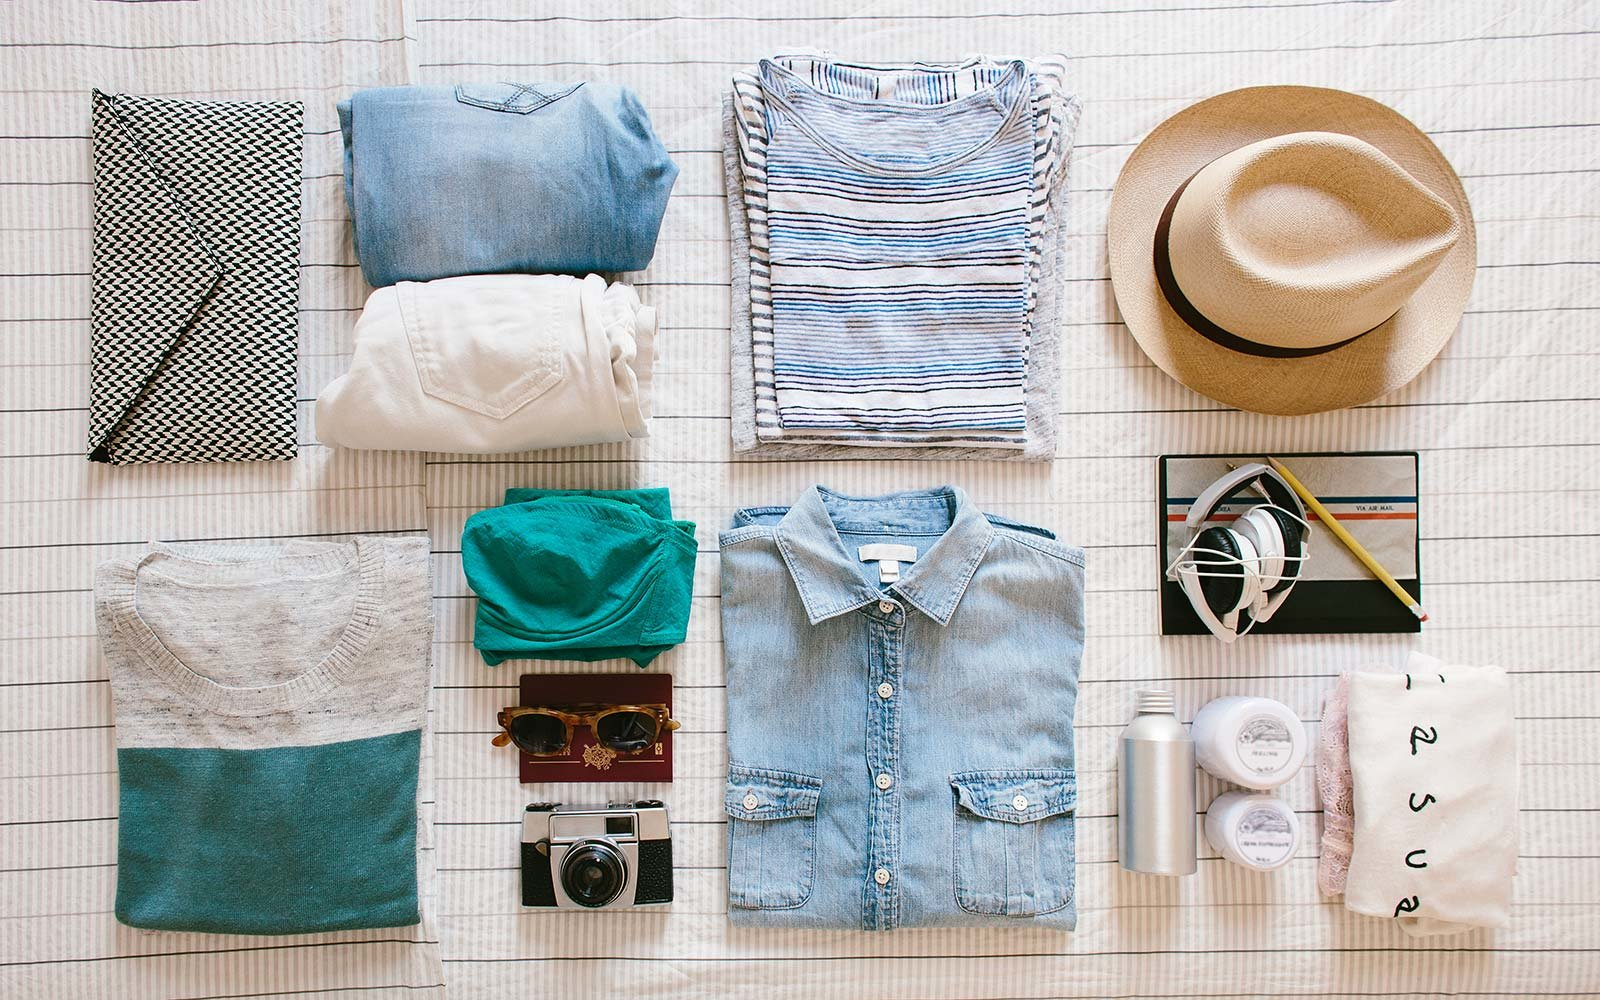 Pack suitcase outfit